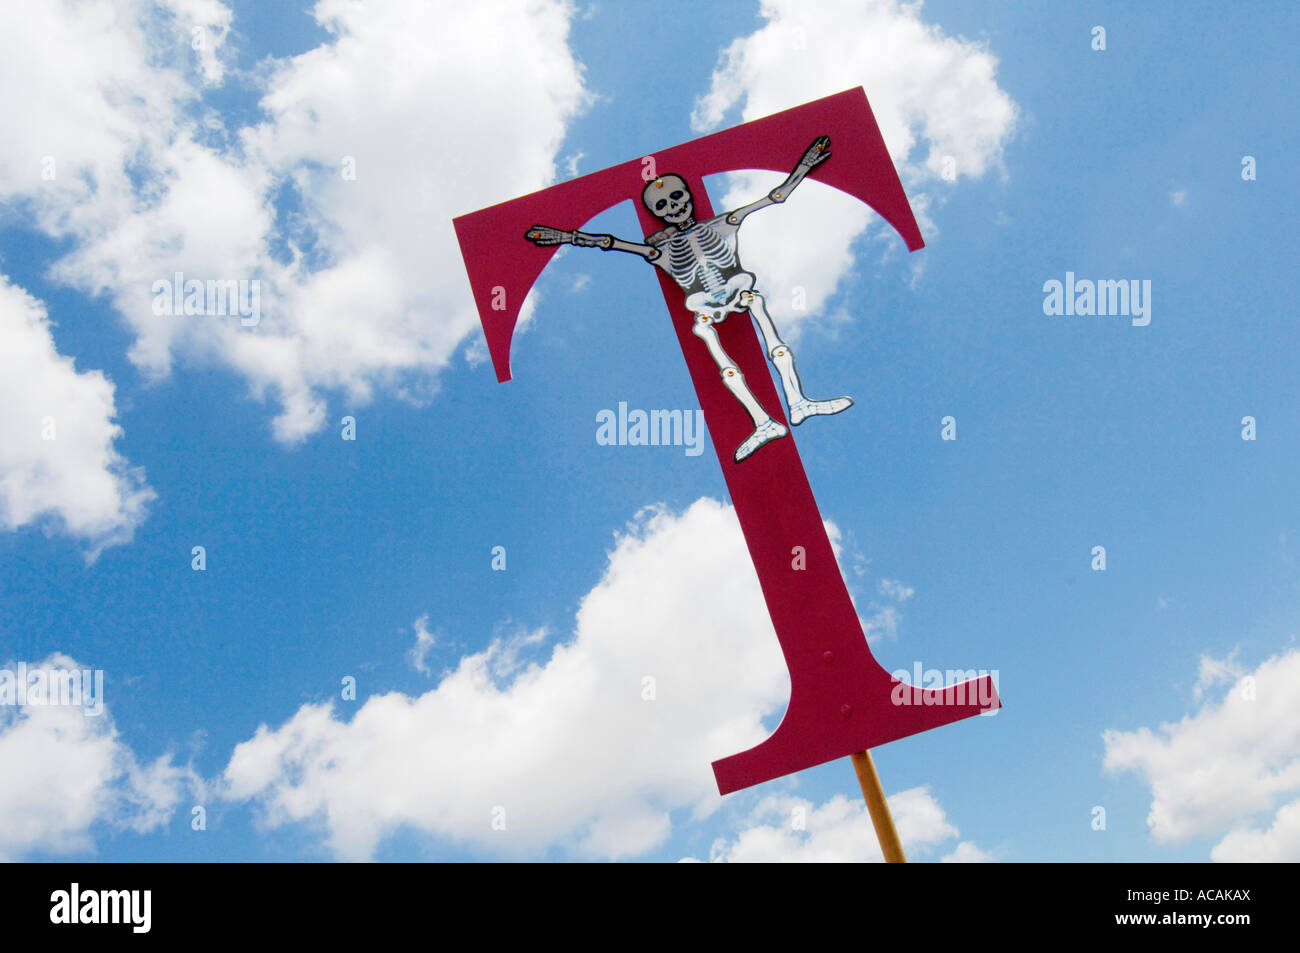 Trade Union - Ver.di strike at Telekom against outsourcing and cuts of wages - Stock Image